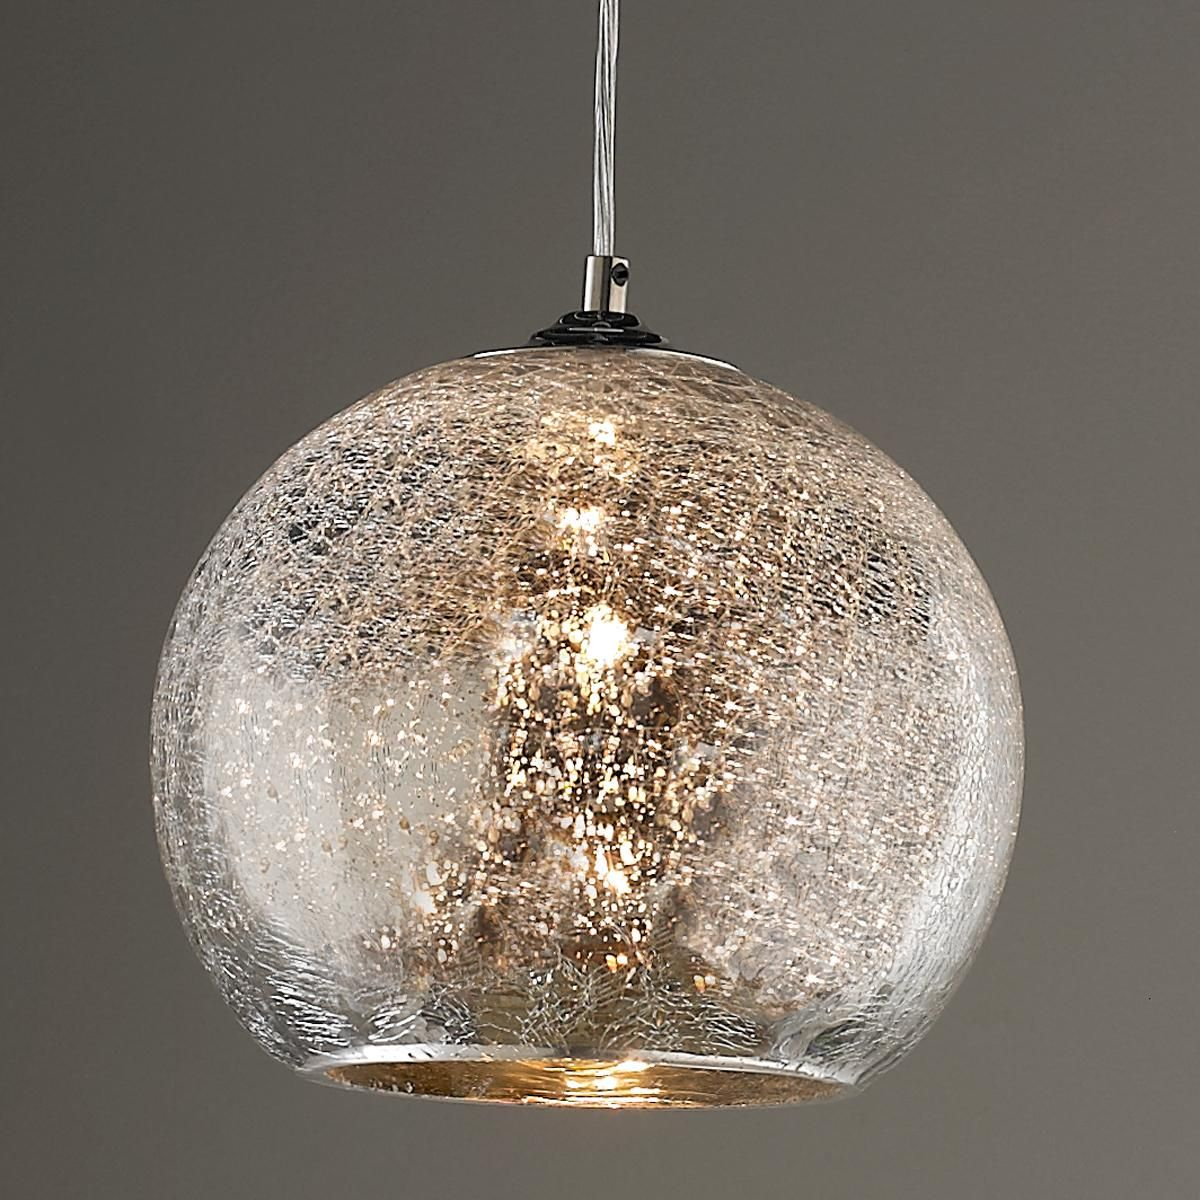 Kitchen Pendant Lighting Glass Shades Crackled Mercury Bowl Pendant Light Pendant Lighting